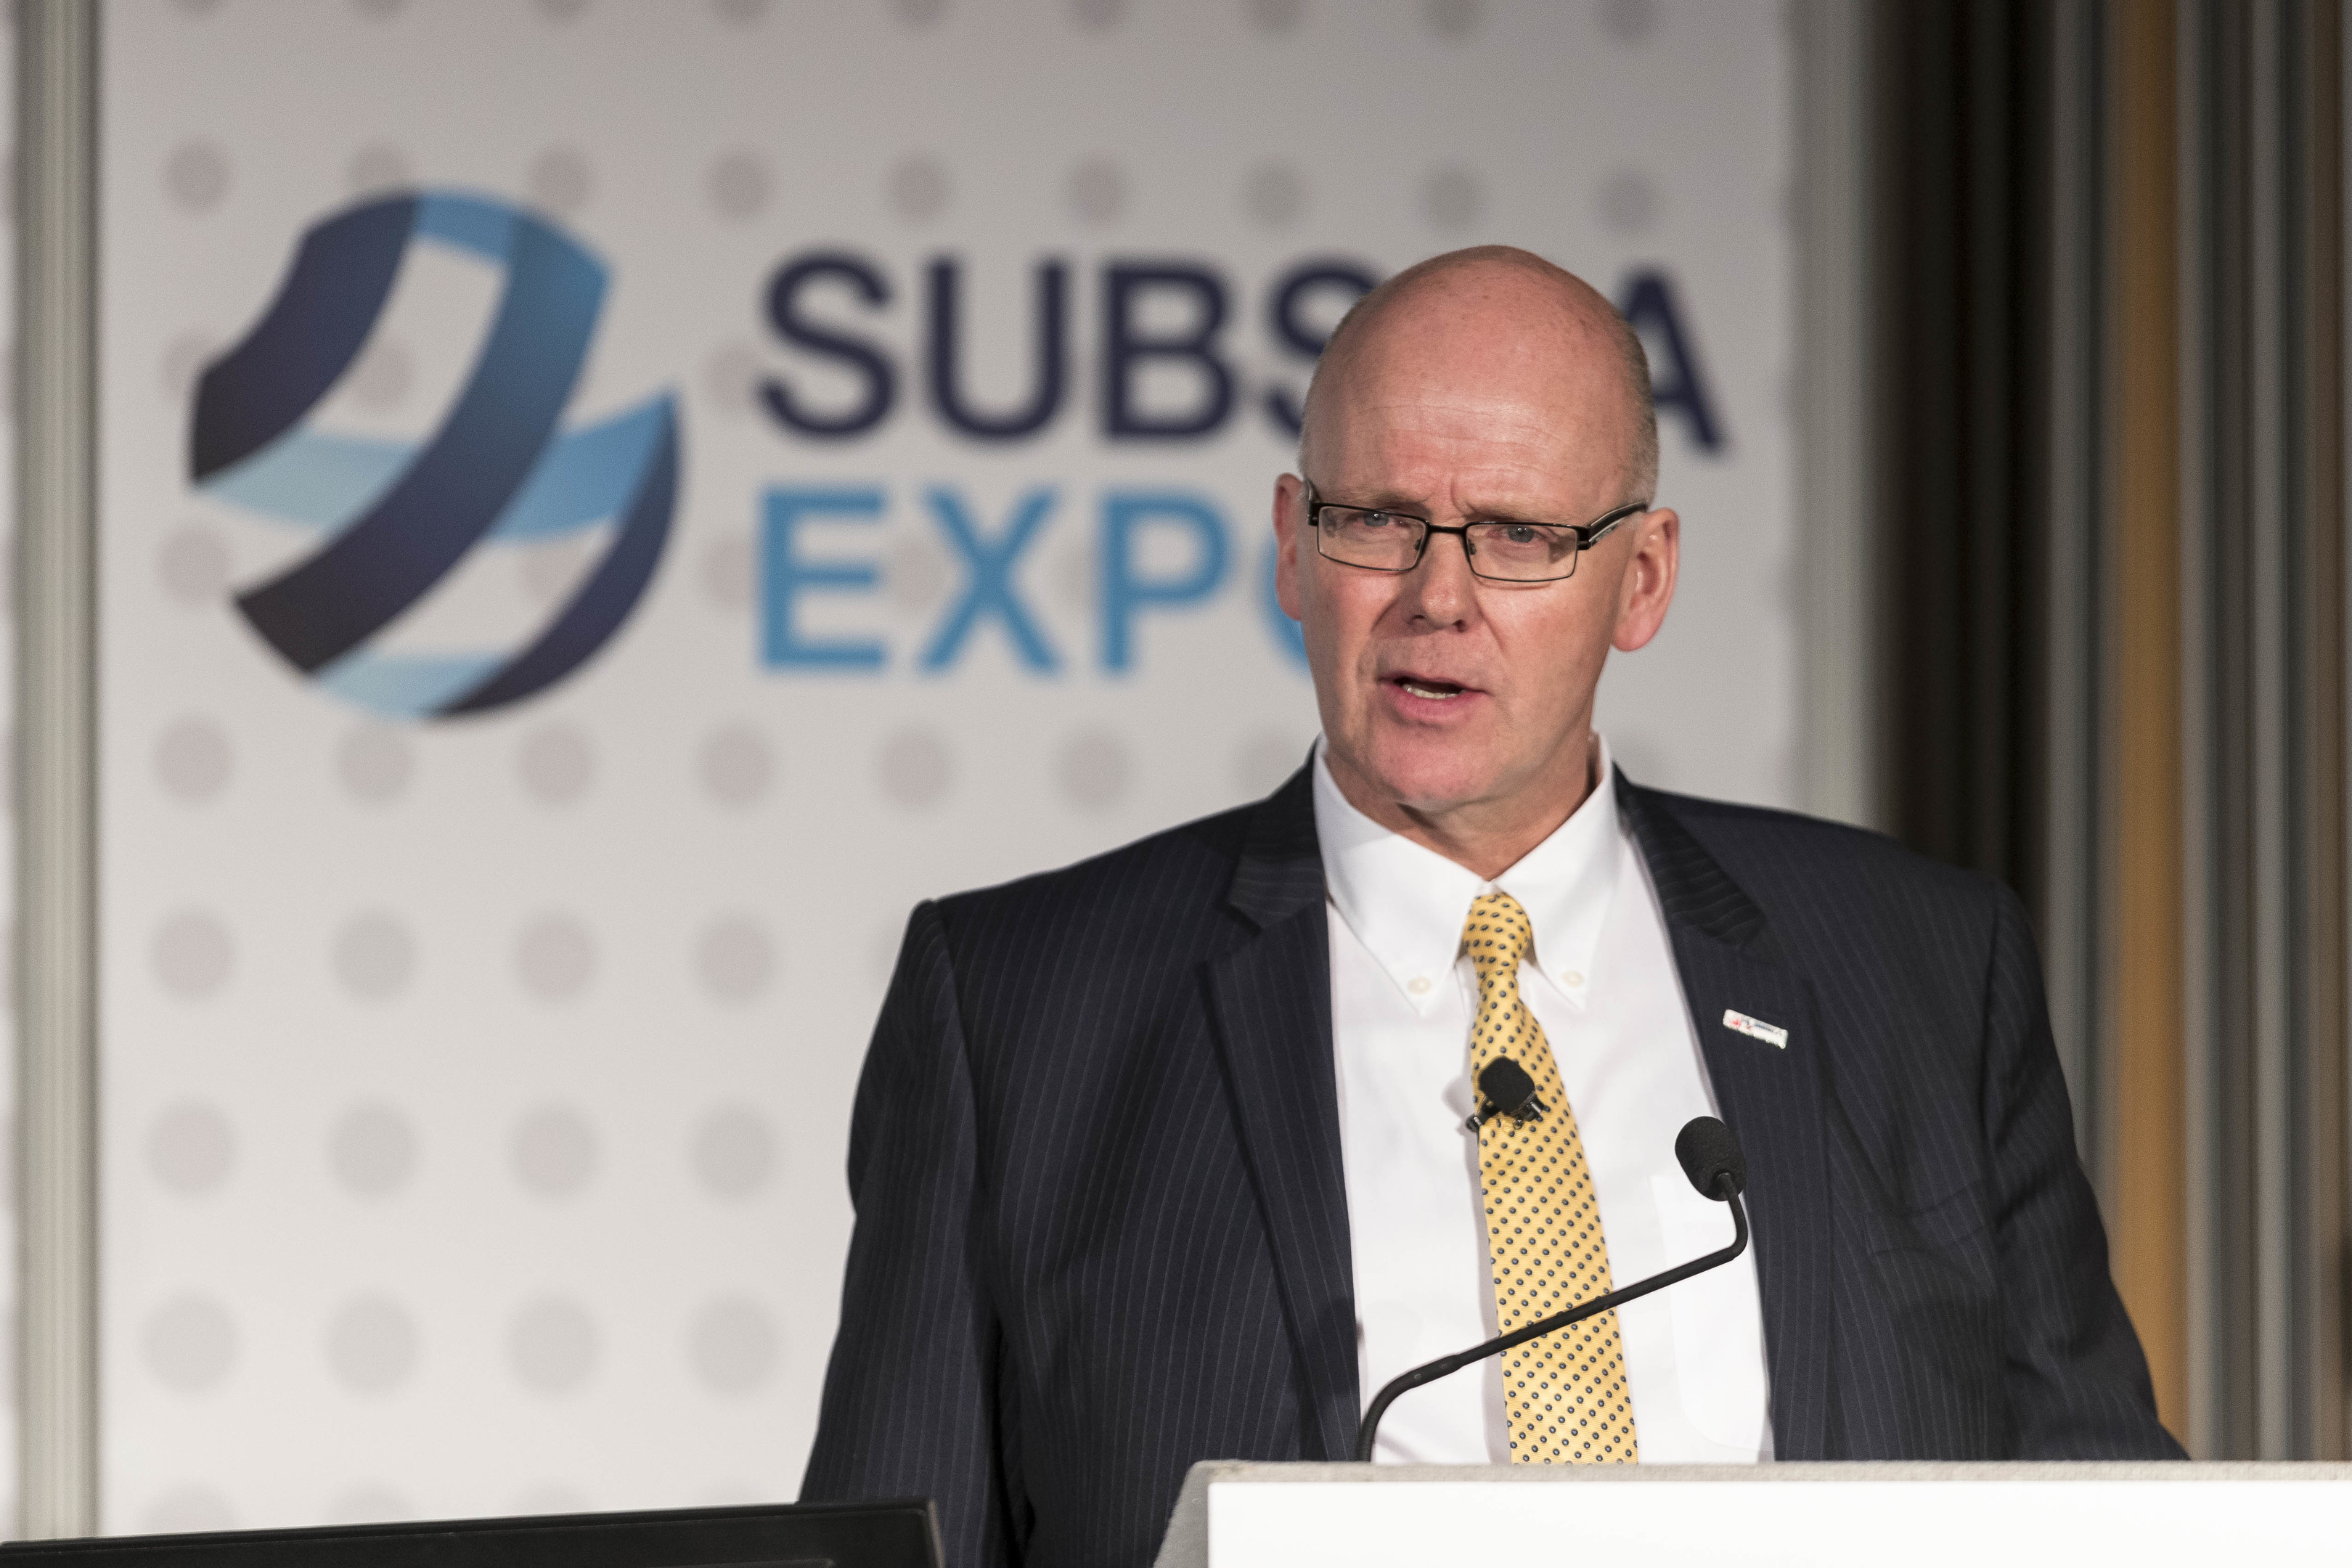 Subsea UK chief executive Neil Gordon speak at plenary session of Subsea Expo 2018 in Aberdeen.